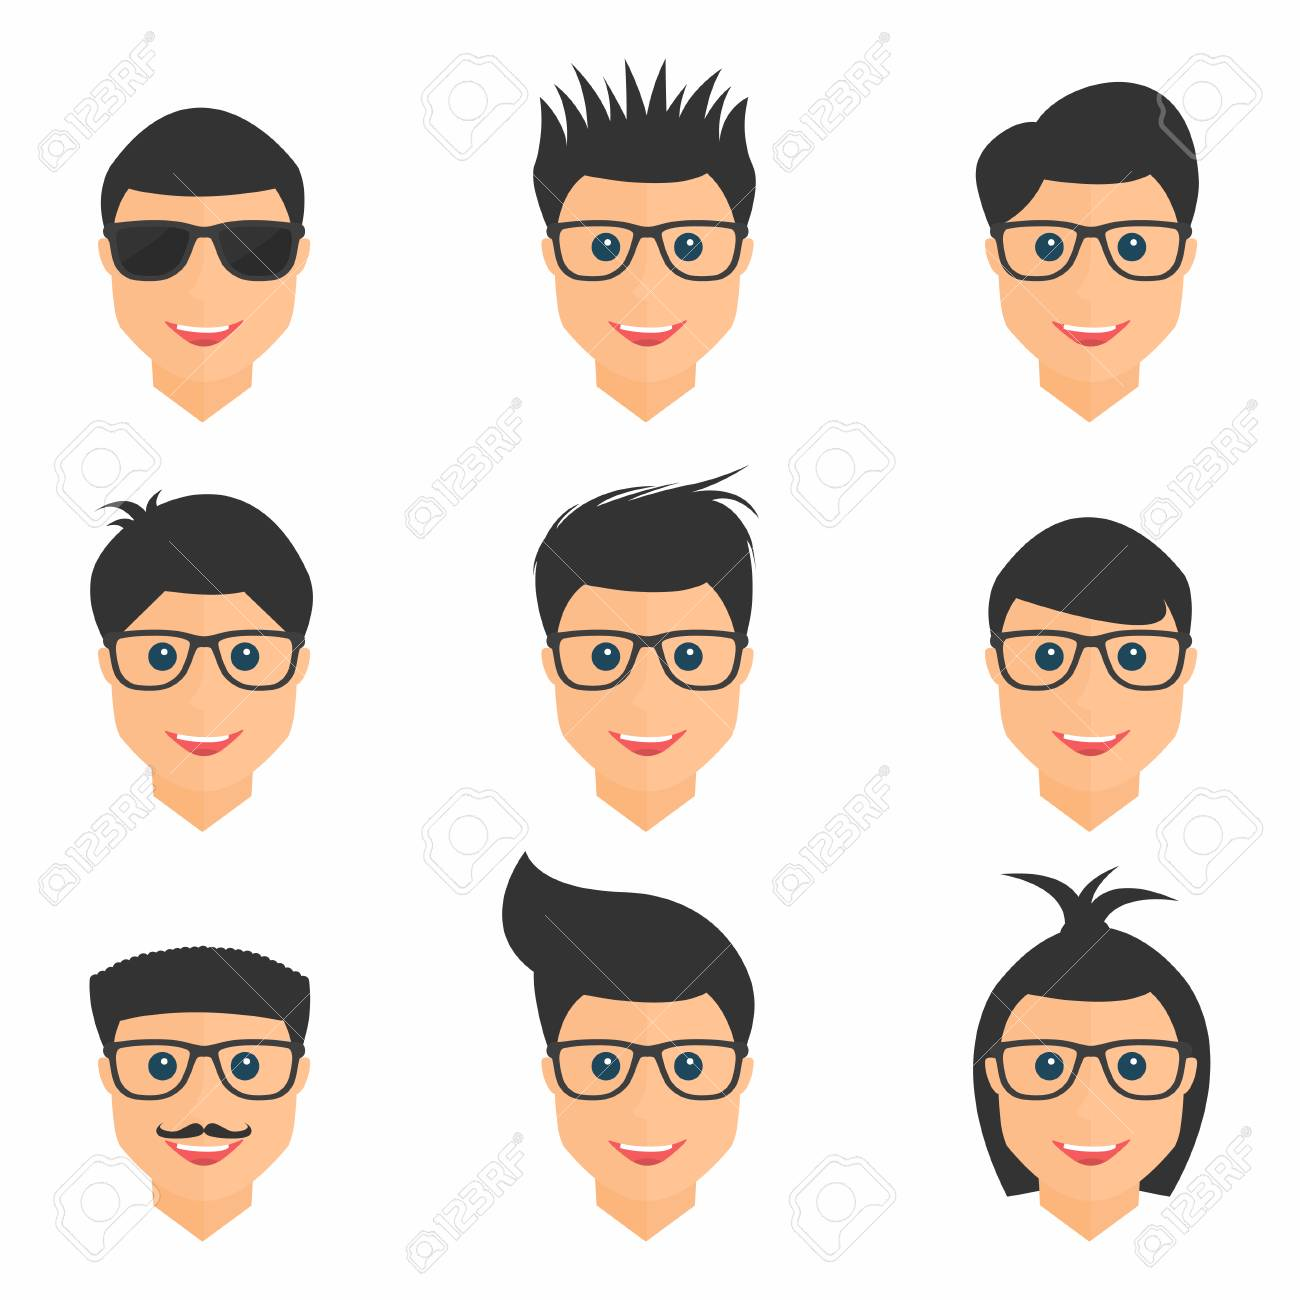 Hairstyles Set. Mens Hairstyles In Different Form. Collection Of  Fashionable Stylish Types. Vector